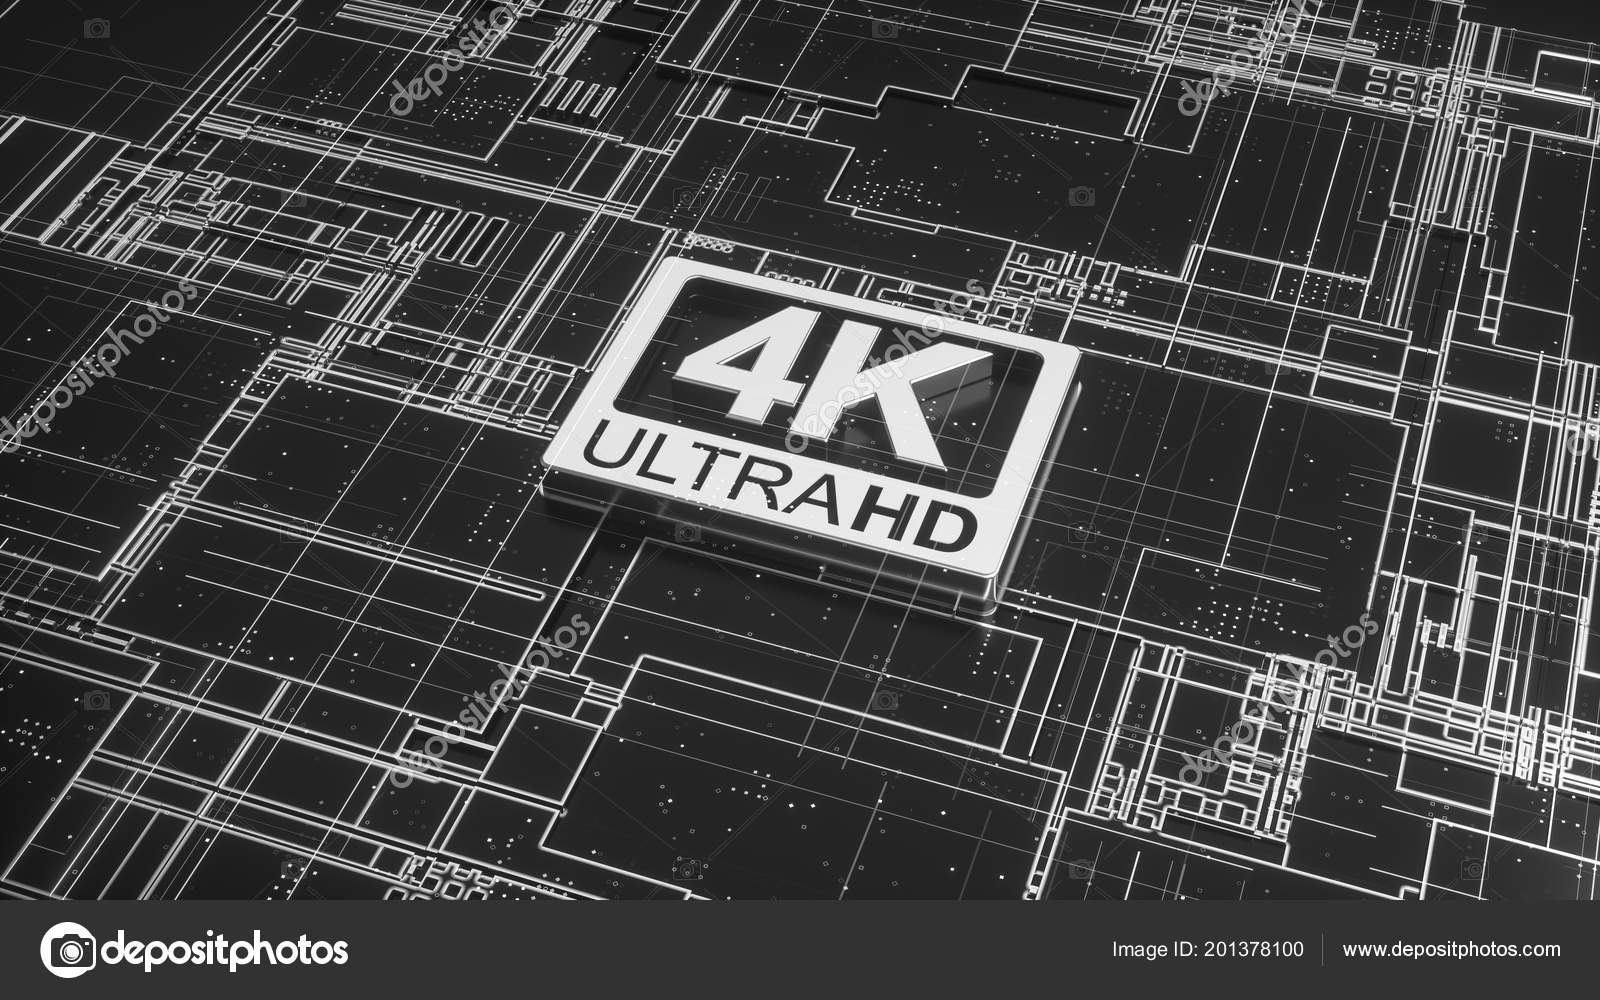 Ultra Symbol Abstract Electronic Circuit Board Television Technology Symbols A That 4k Hd On Concept Of High Definition Sign Digital Background With Many Lines